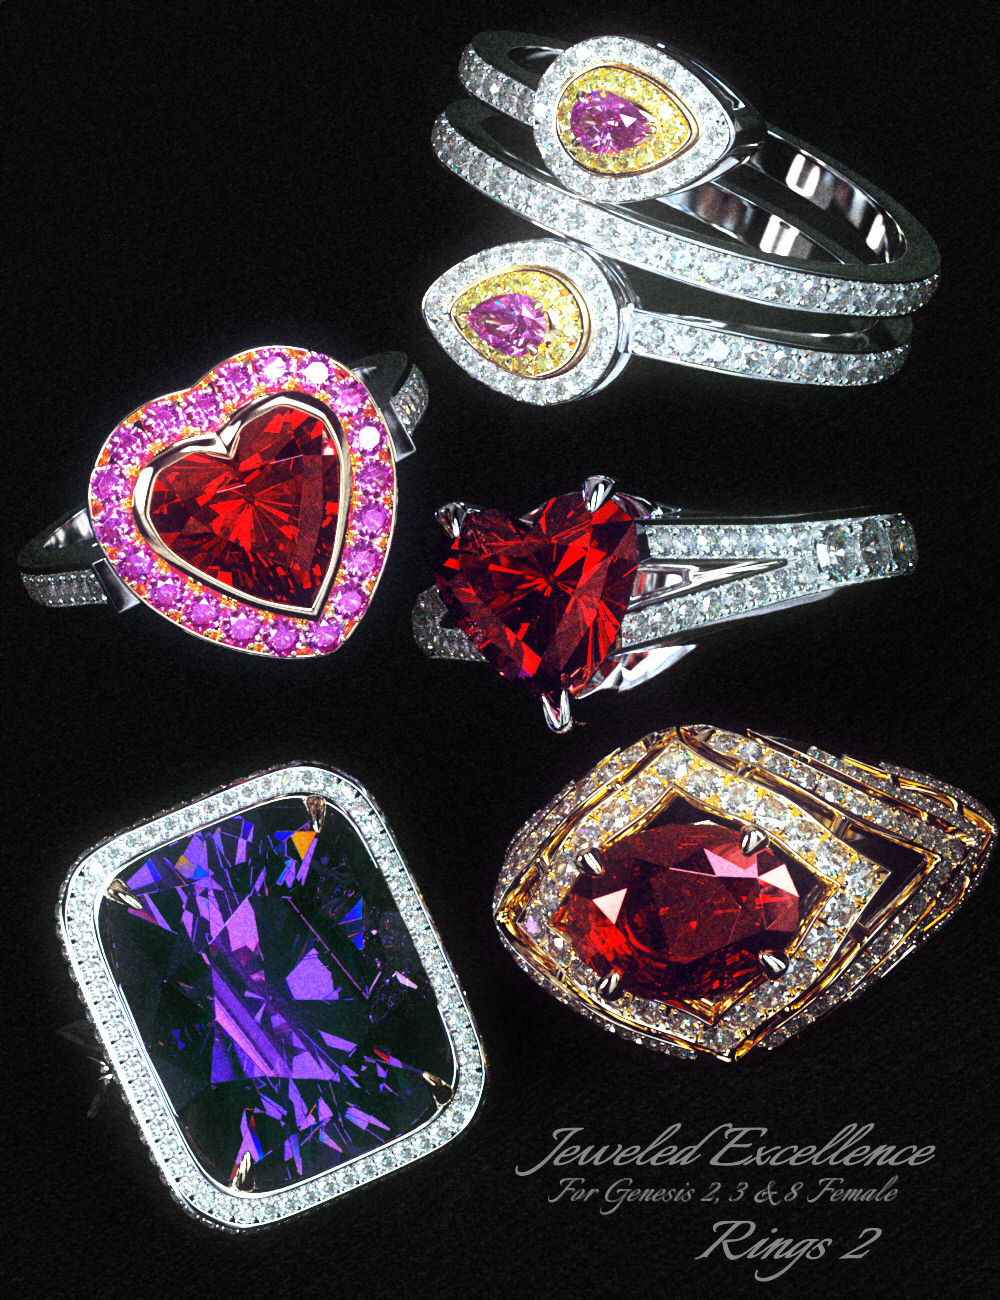 Jeweled Excellence Rings 2 for Genesis 2, 3 and 8 Female(s) by: Mattymanx, 3D Models by Daz 3D